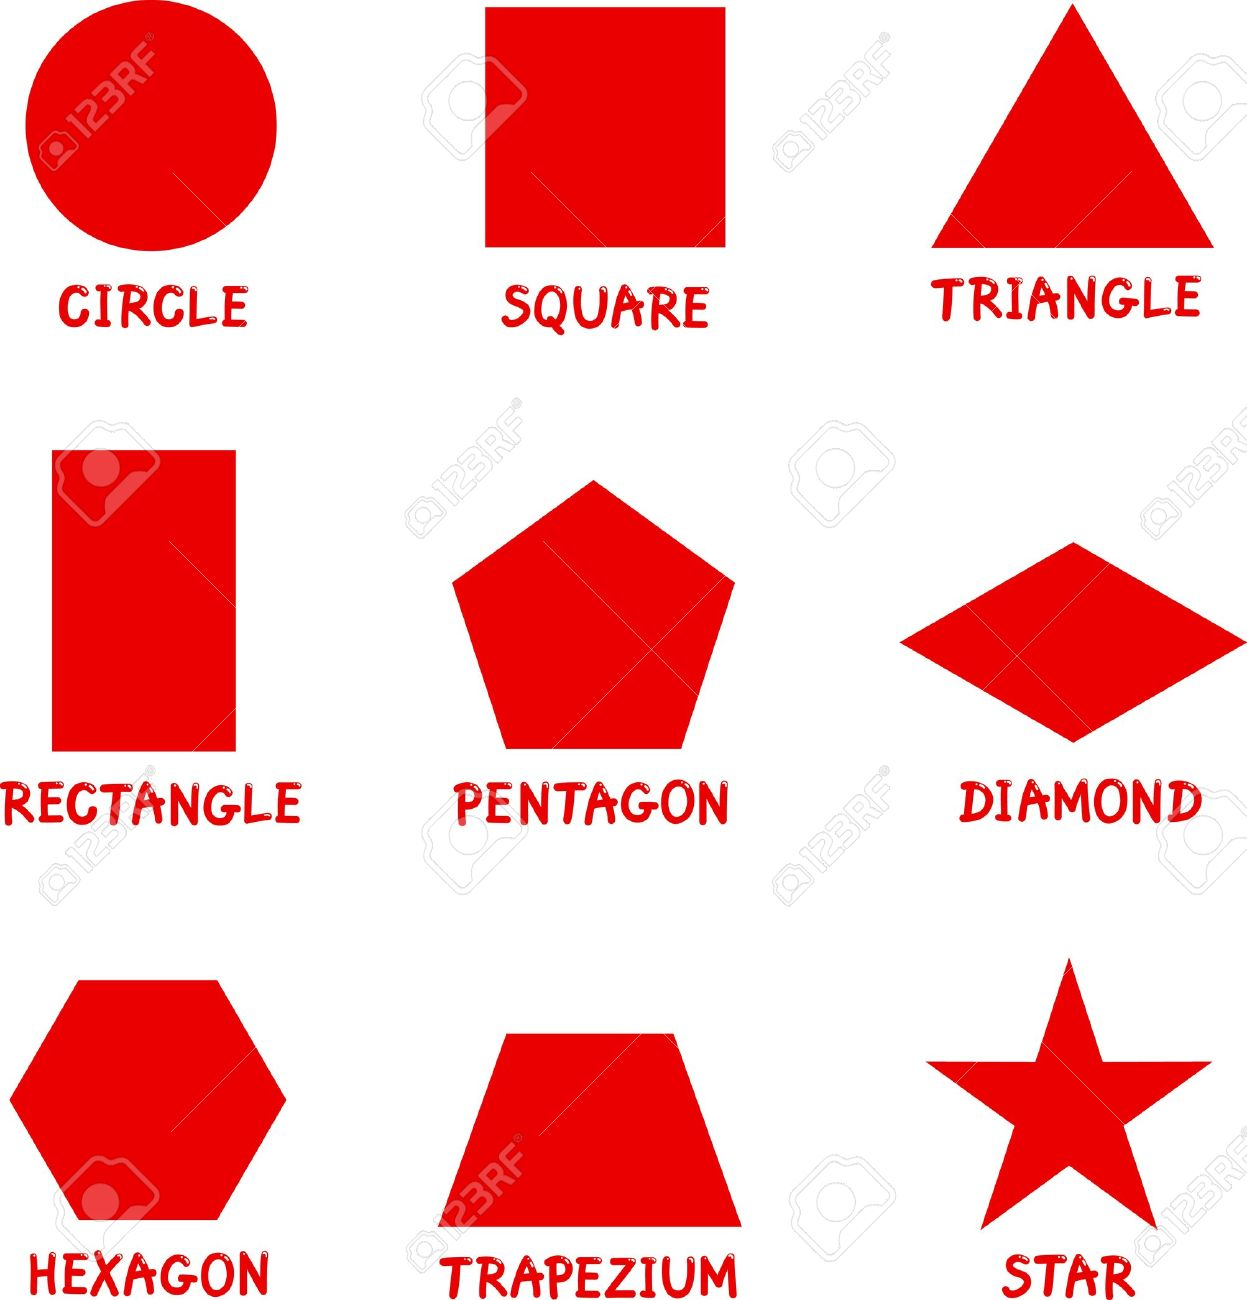 Illustration of Basic Geometric Shapes with Captions for Children Education Stock Vector - 14806262